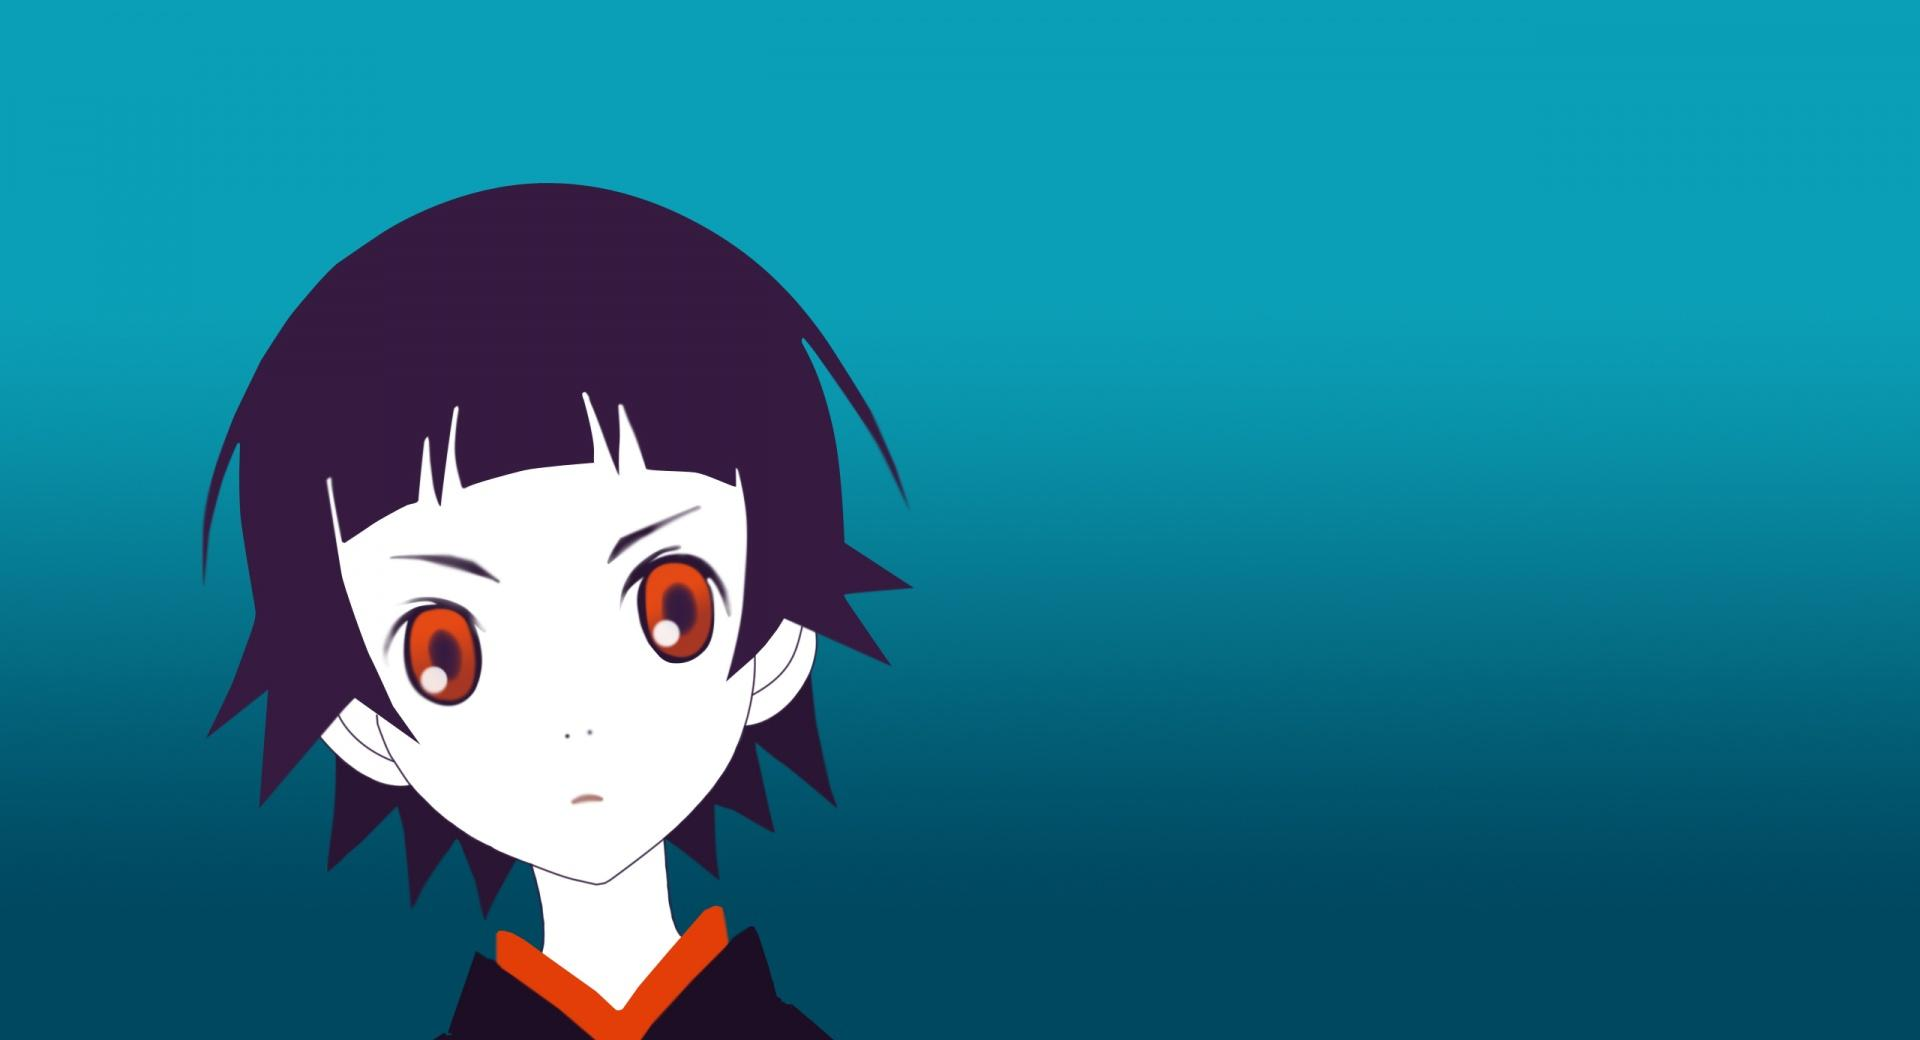 Anime Girl With Red Eyes wallpapers HD quality